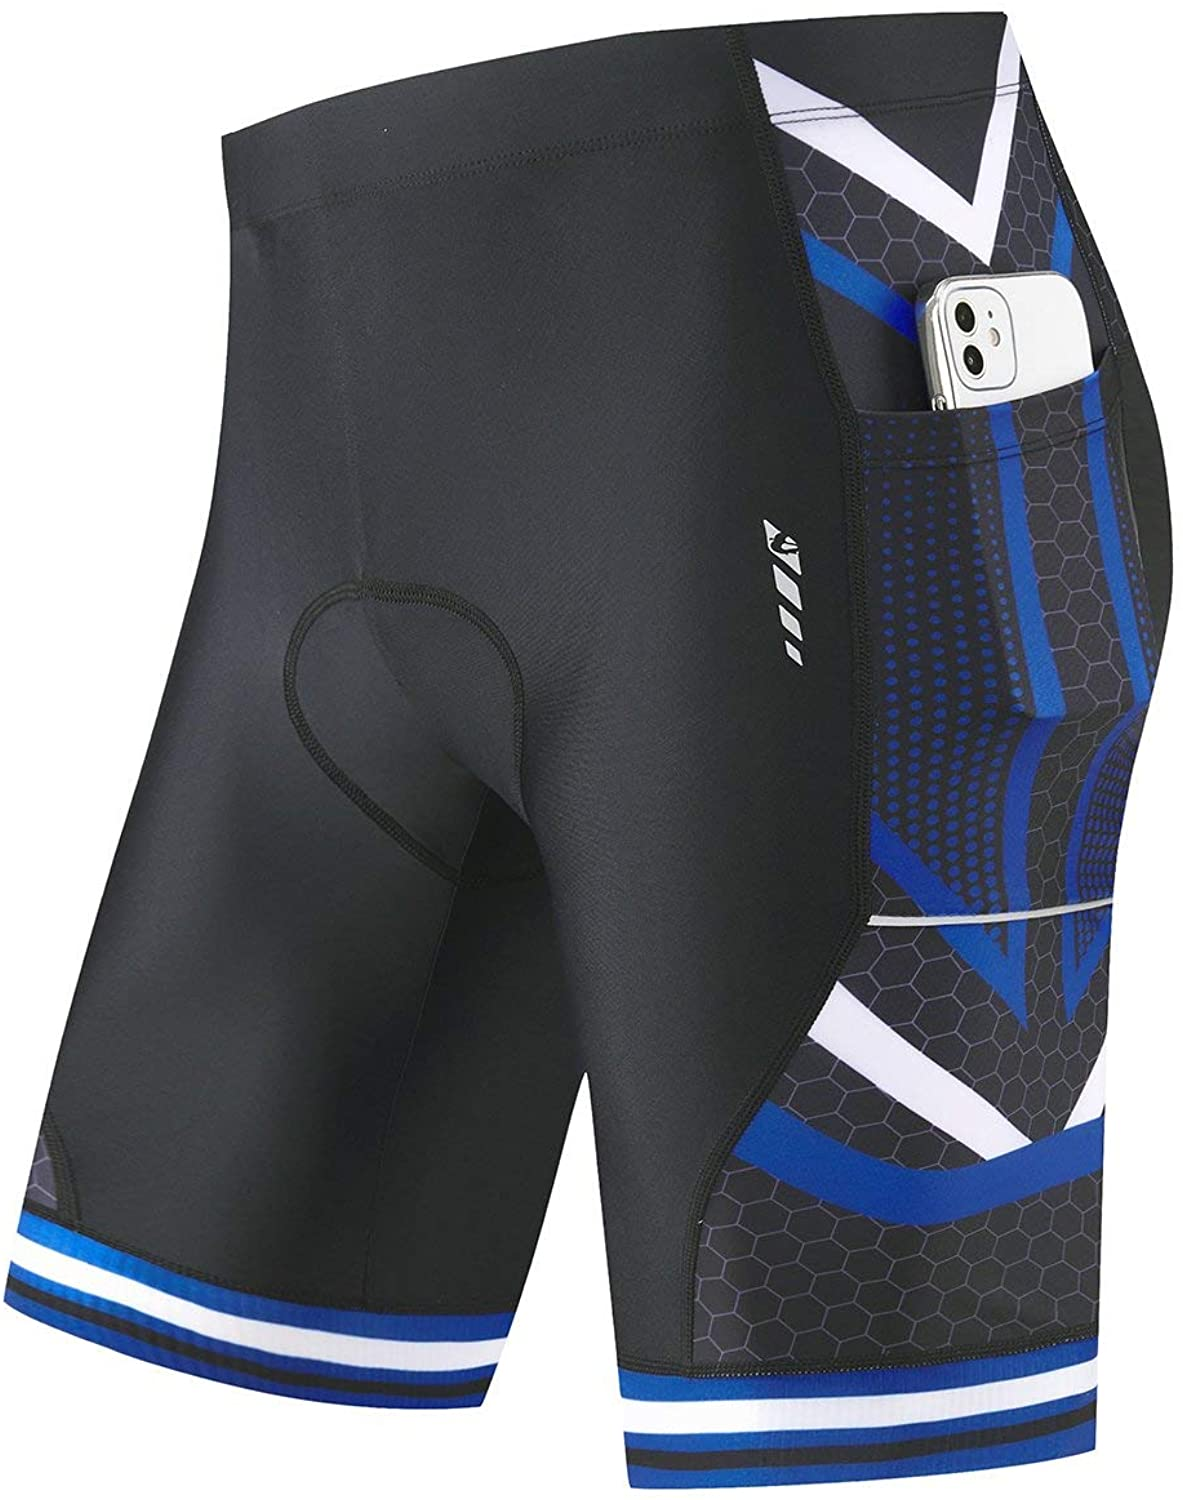 BALEAF Men's Bike Shorts Surprise price 4D Pockets Branded goods Bicycle Ridin Cycling Padded